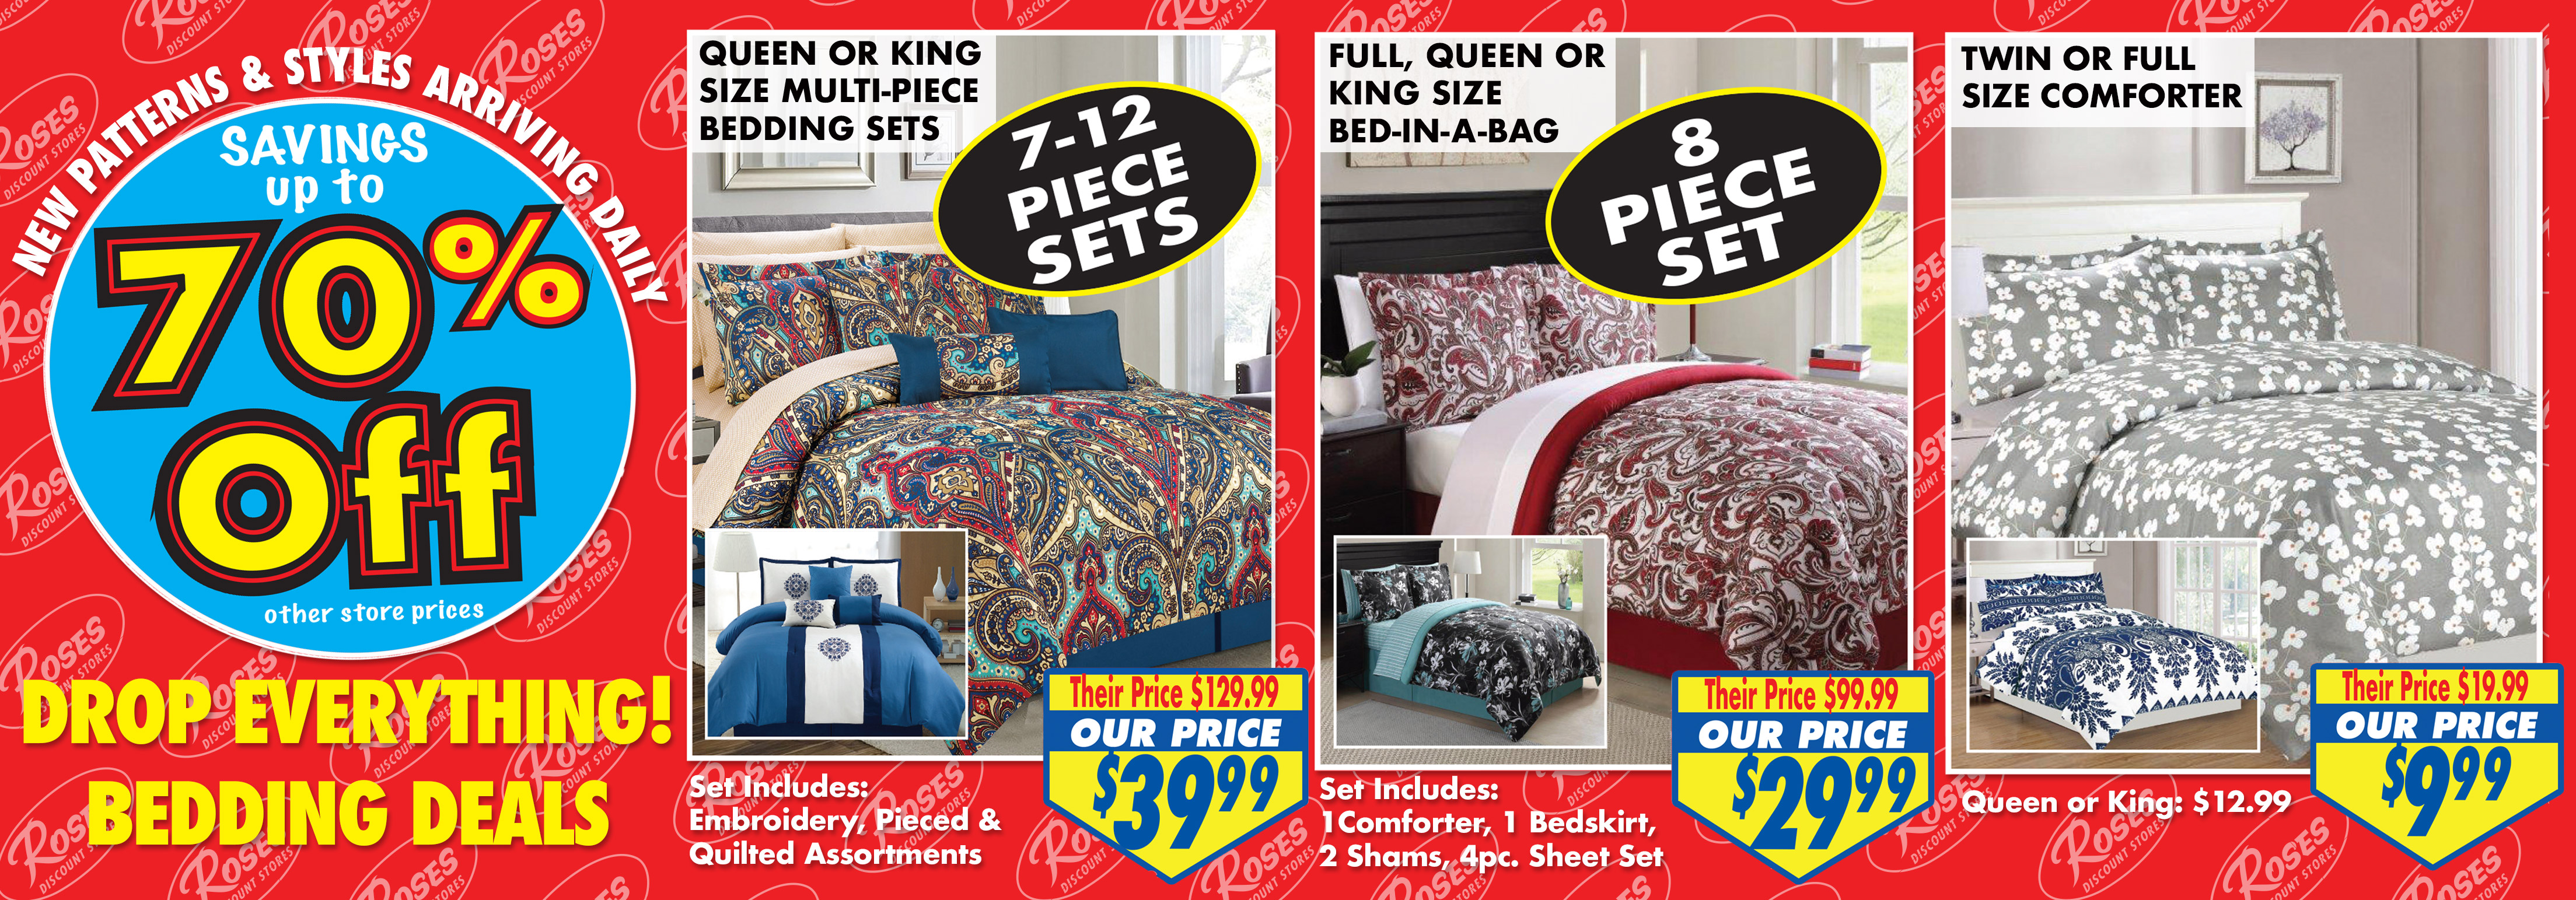 70% Off Bedding Deals